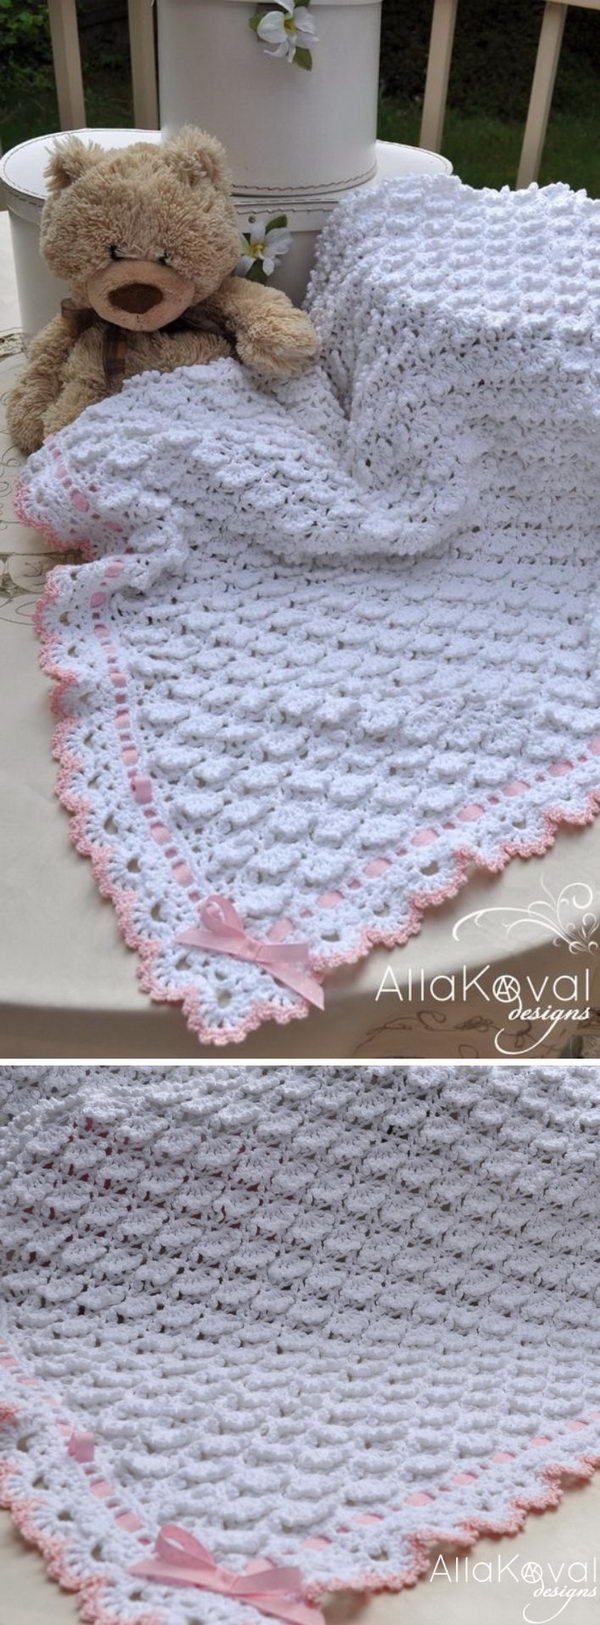 30 Free Crochet Patterns For Blankets Hative